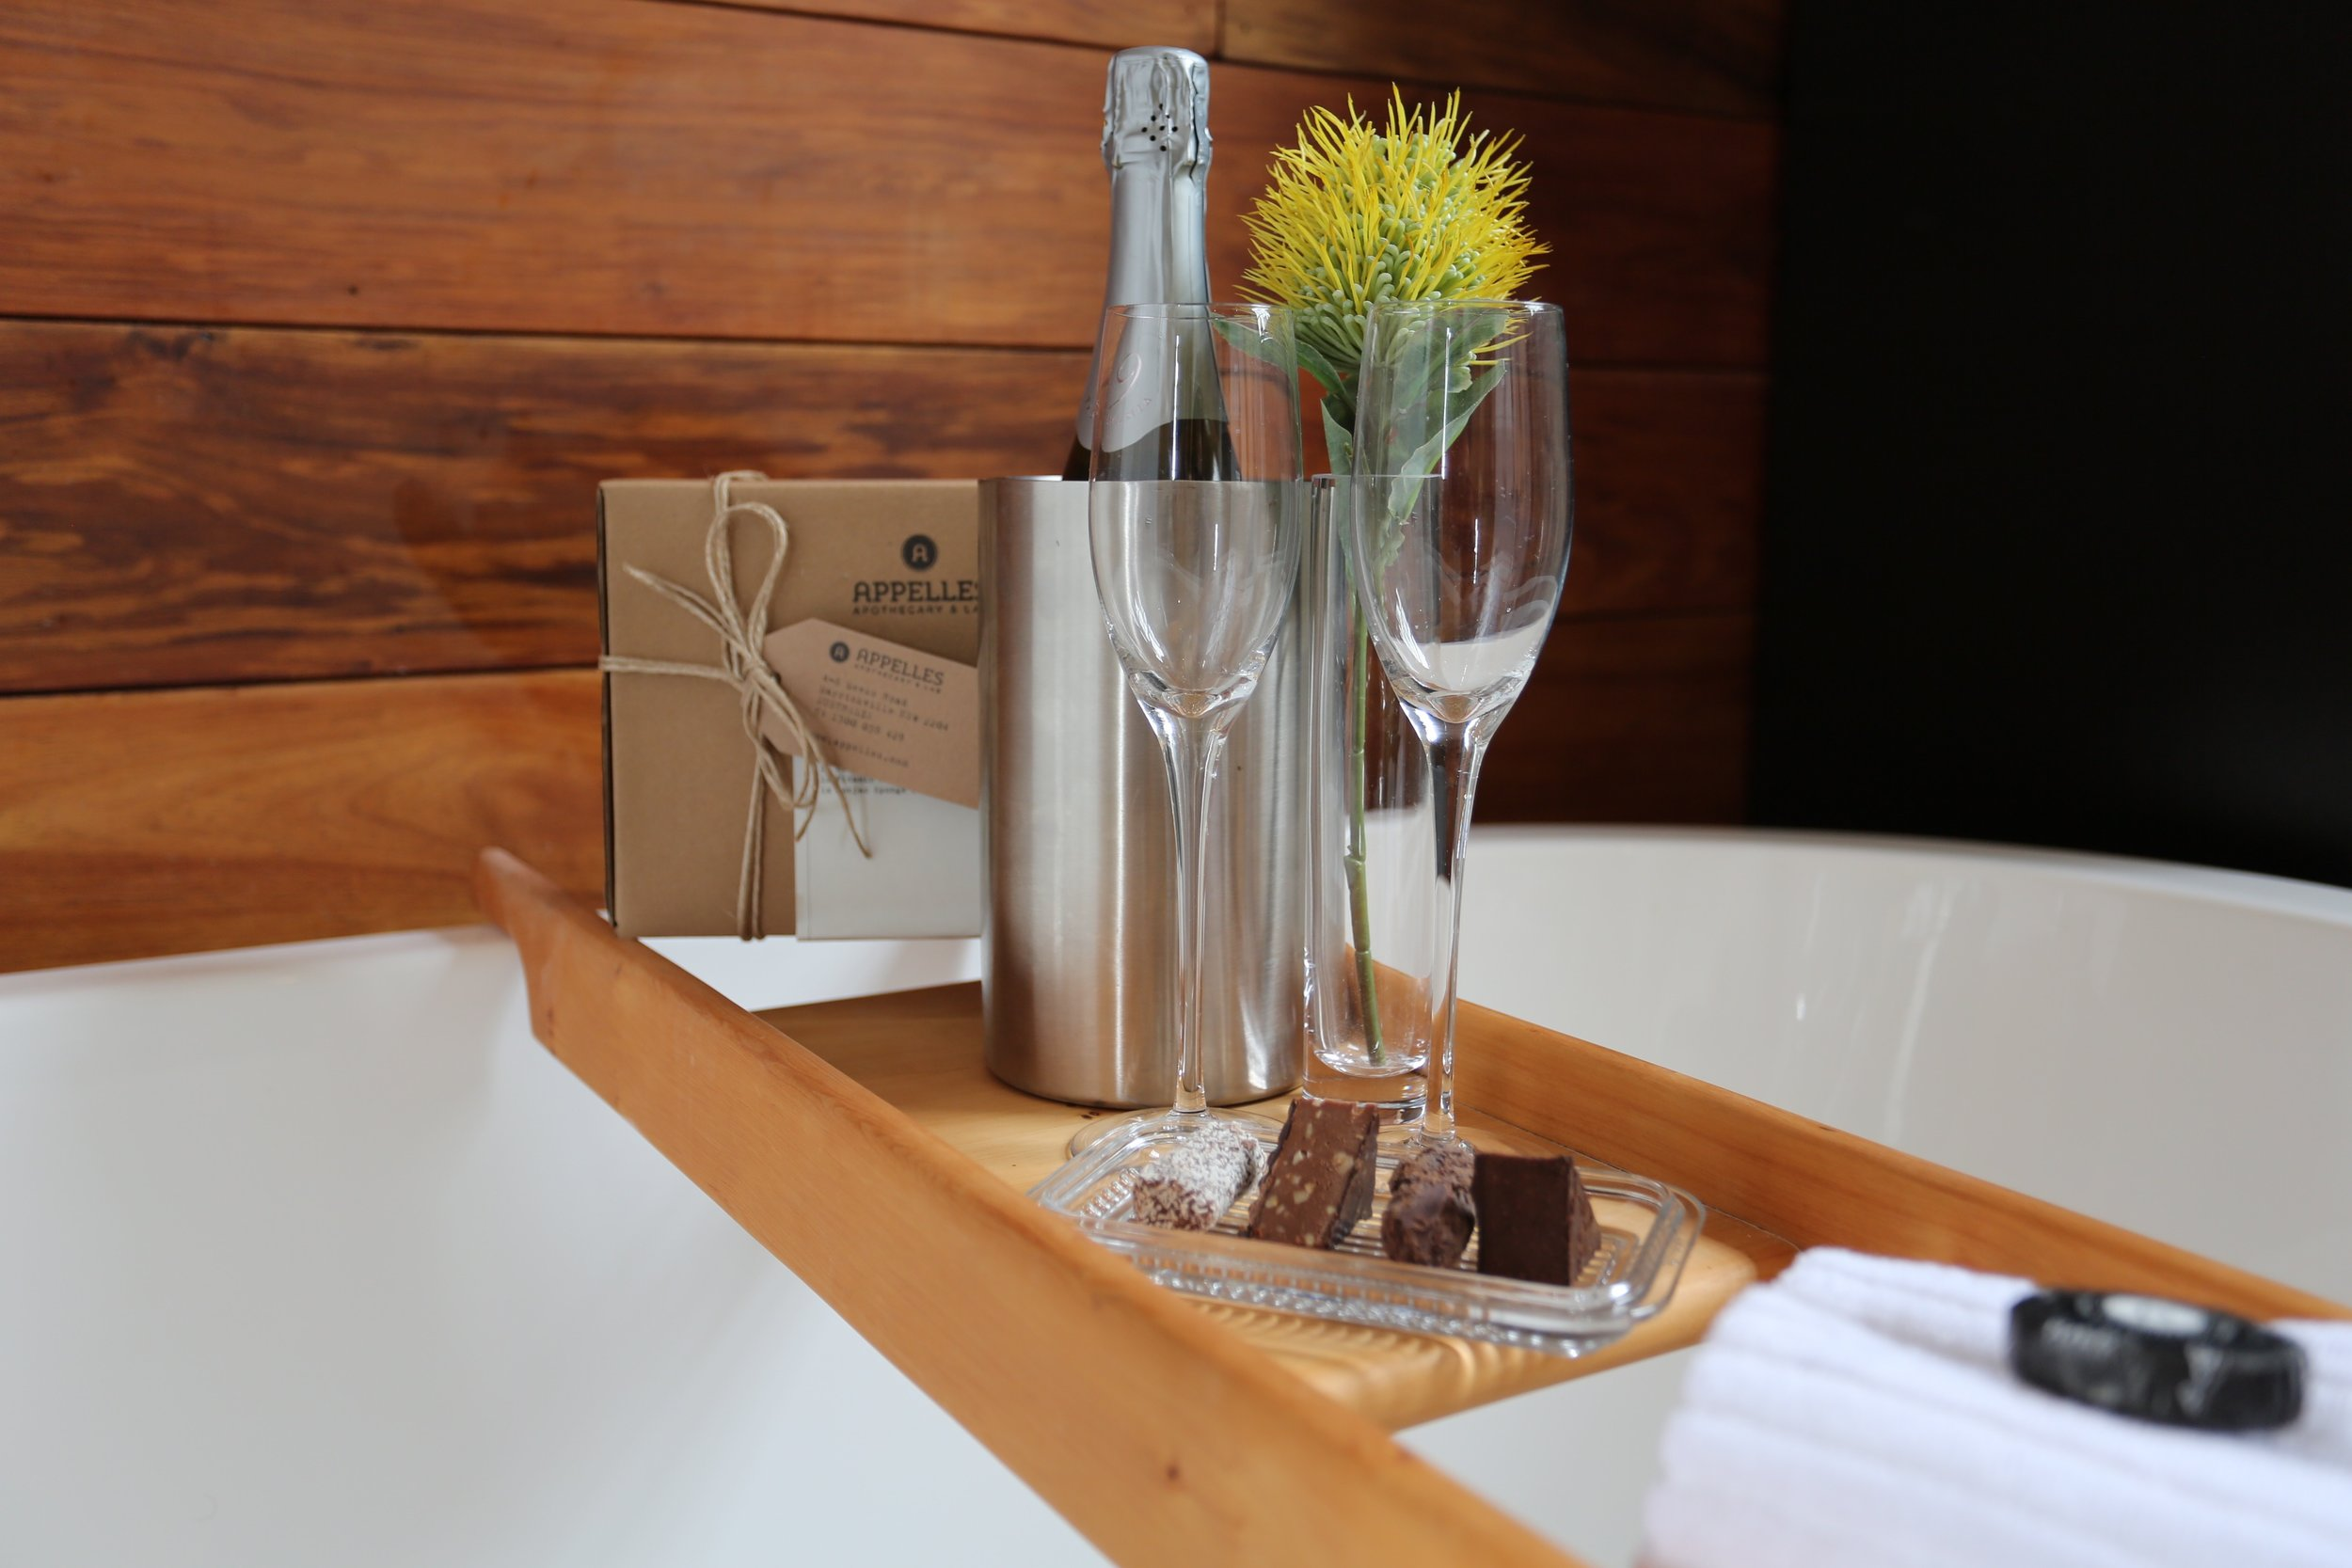 Sparkling Wine and Chocolates - So it's a Birthday or another special occasion and you want something in the room ready for your arrival.What's included?Premium Tasmanian Sparkling Wine A selection of Tasmanian Truffles and FudgeSparkling Wine and Chocolates: $60